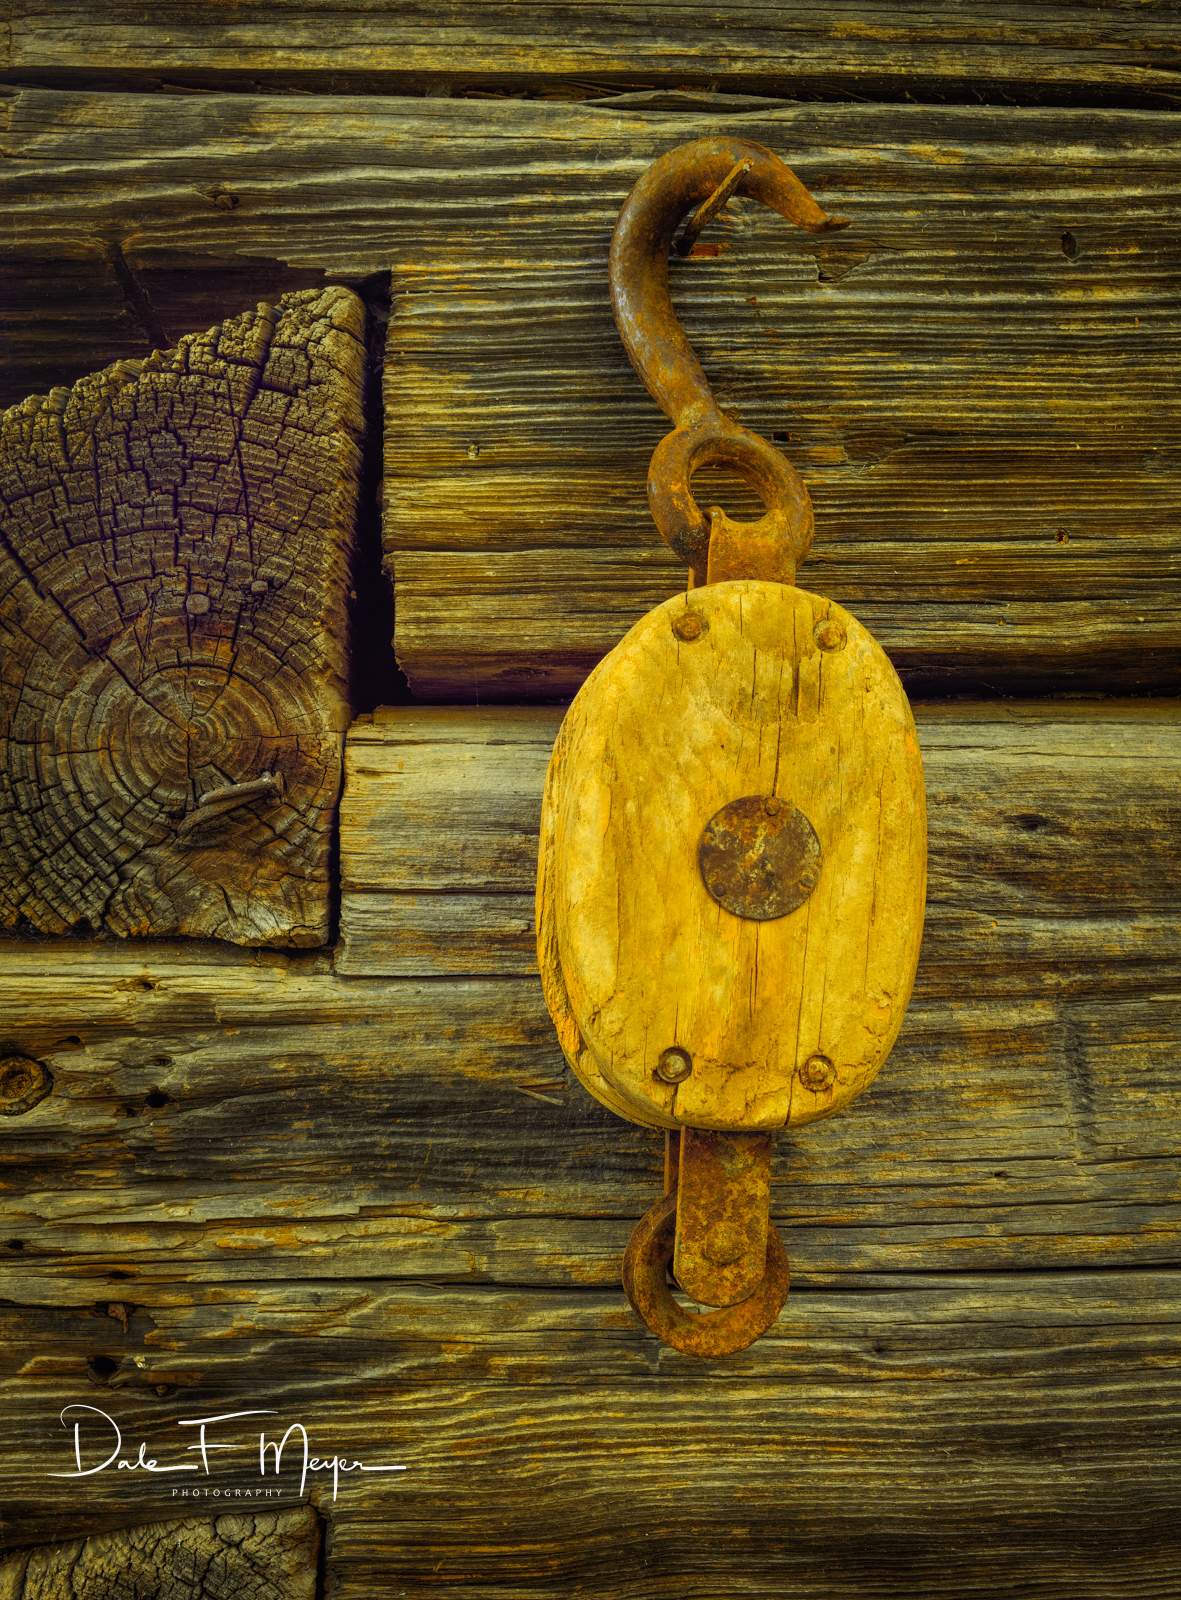 Old Barn Pulley, dove tail logs, time gone by gallerie, photo